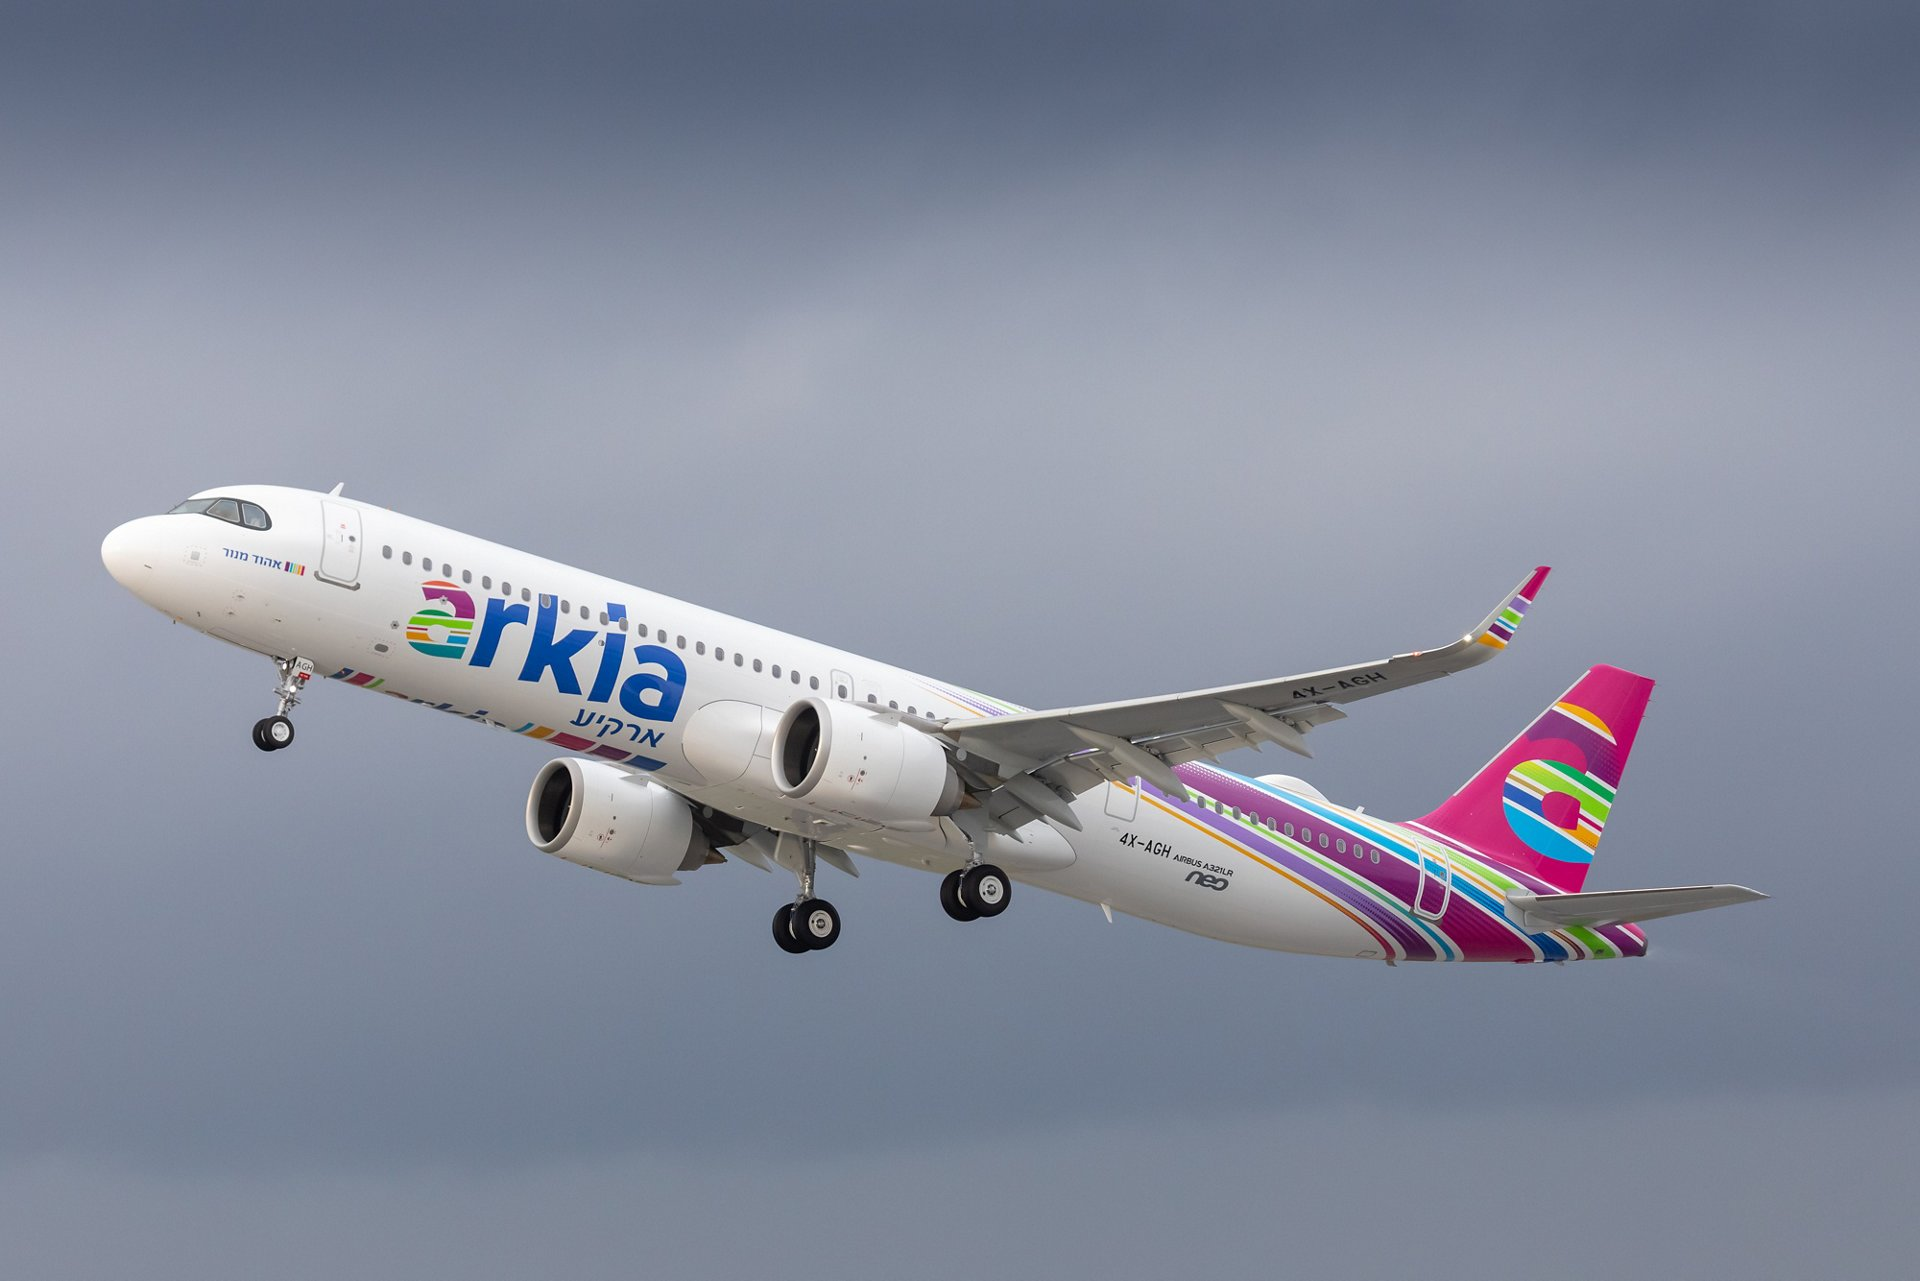 Arkia Israeli Airlines, which received its first A321LR from Airbus in November 2018, is the launch operator for this flexible and capable single-aisle aircraft